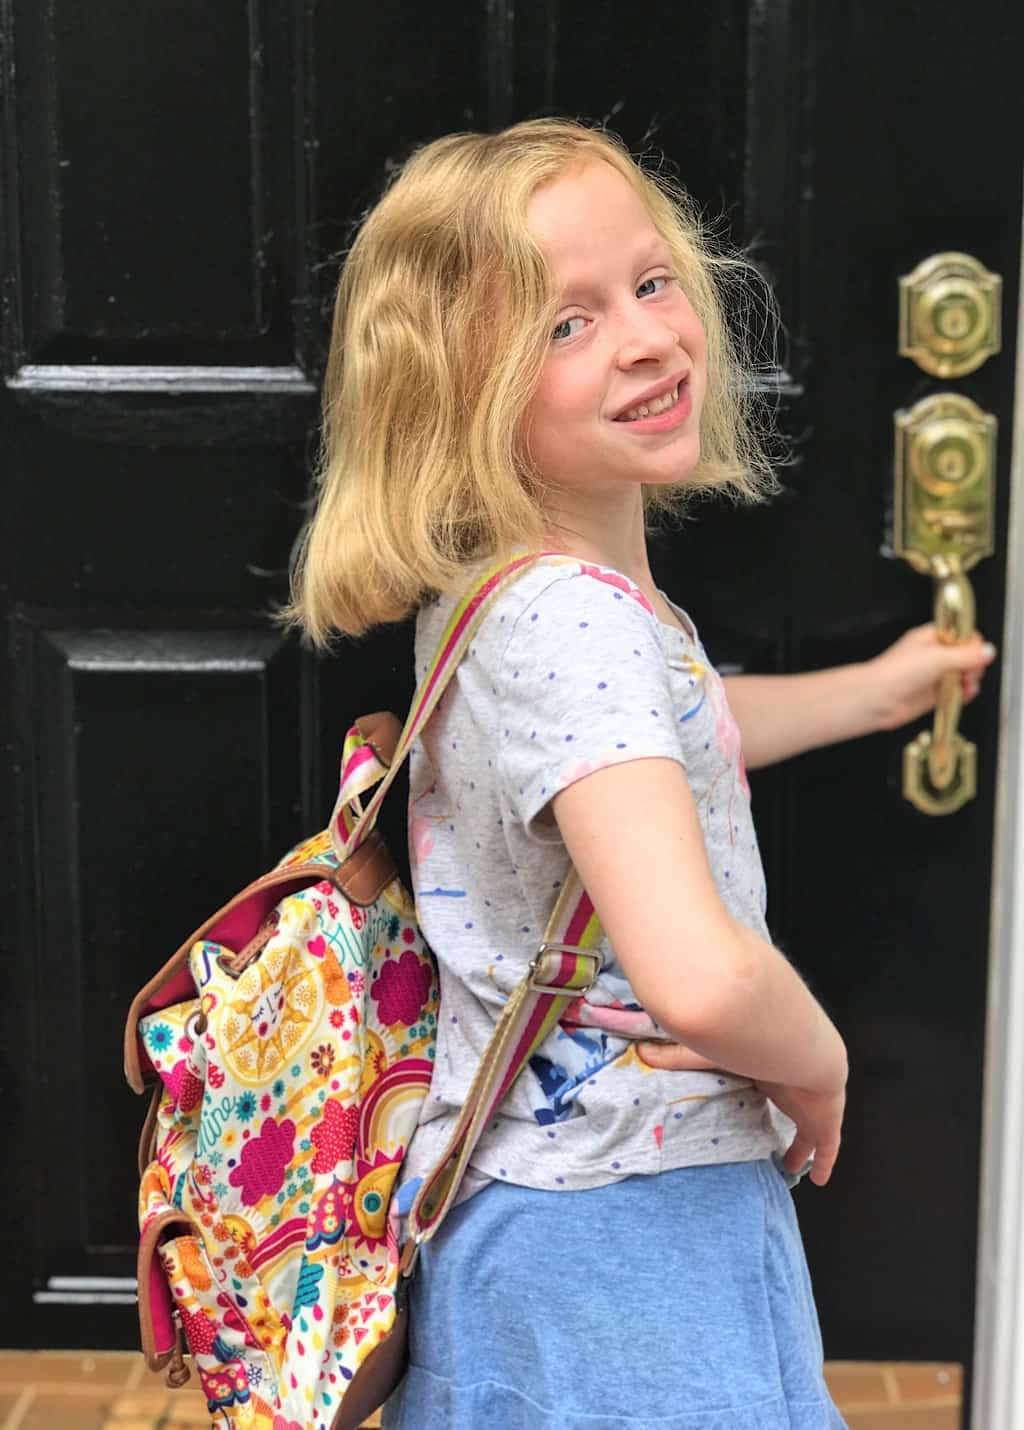 Is your child going back to school soon? Get ready for the transition from summer to fall with this Ultimate Stress Free Back To School Guide For Families!